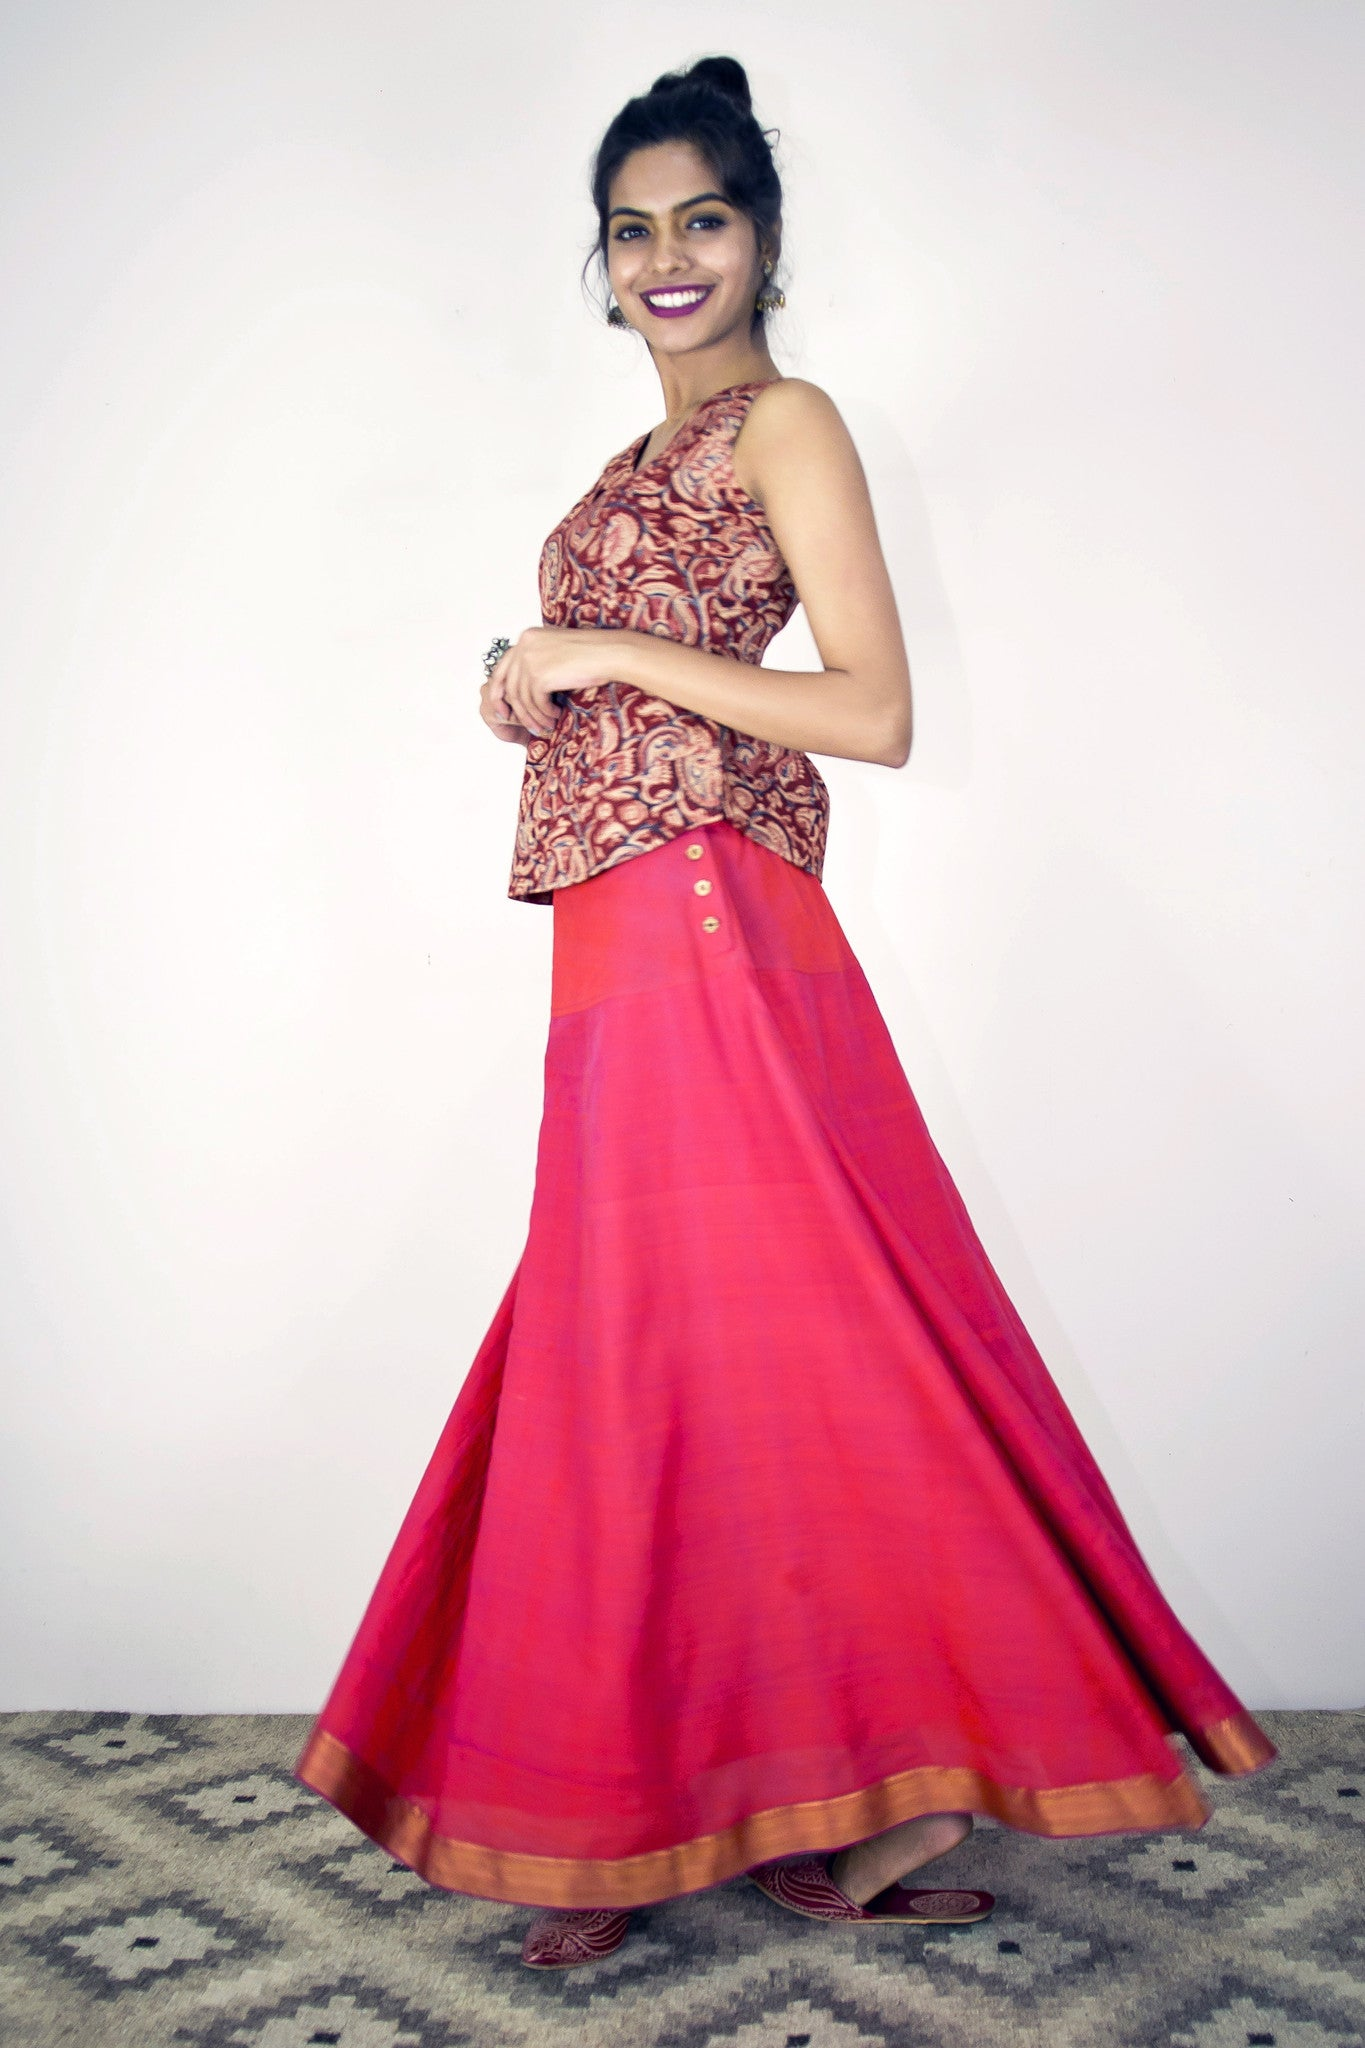 Model is wearing twirl skirt in orange pink mangalgiri paired with gypsy top in maroon kalamkari. With lining.